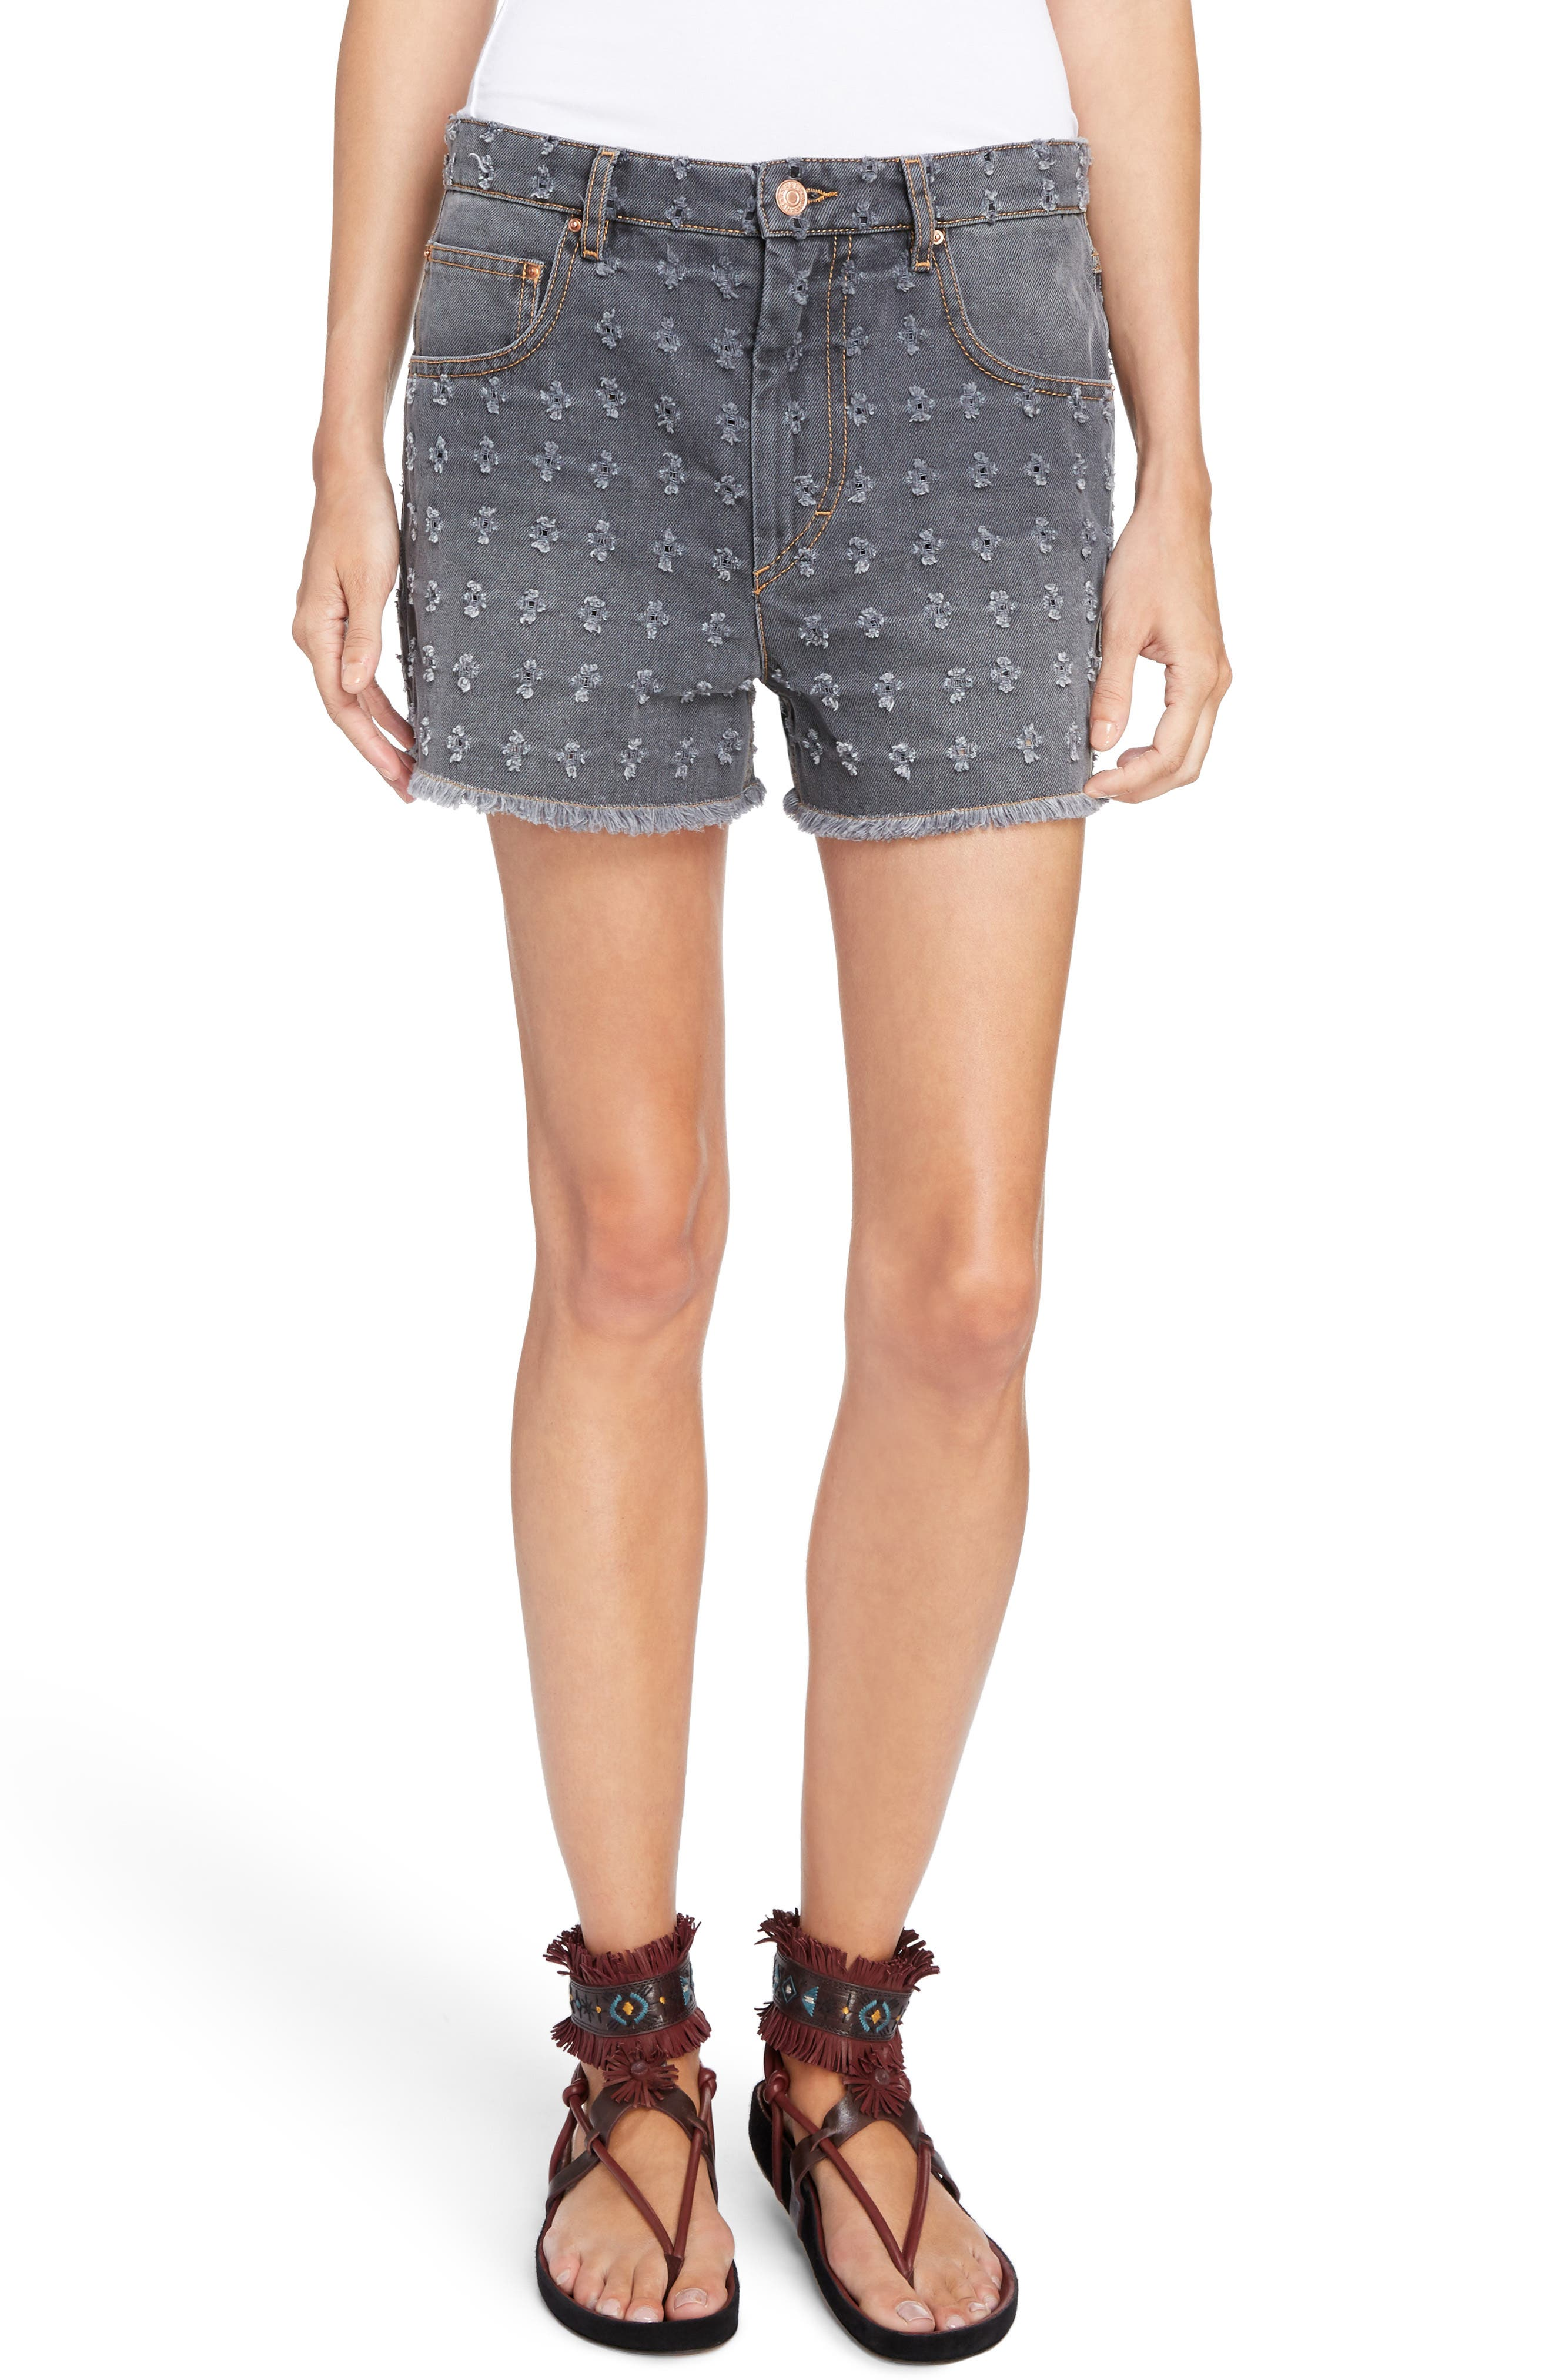 Isabel Marant Étoile Ripped Denim Shorts,                             Main thumbnail 1, color,                             Grey